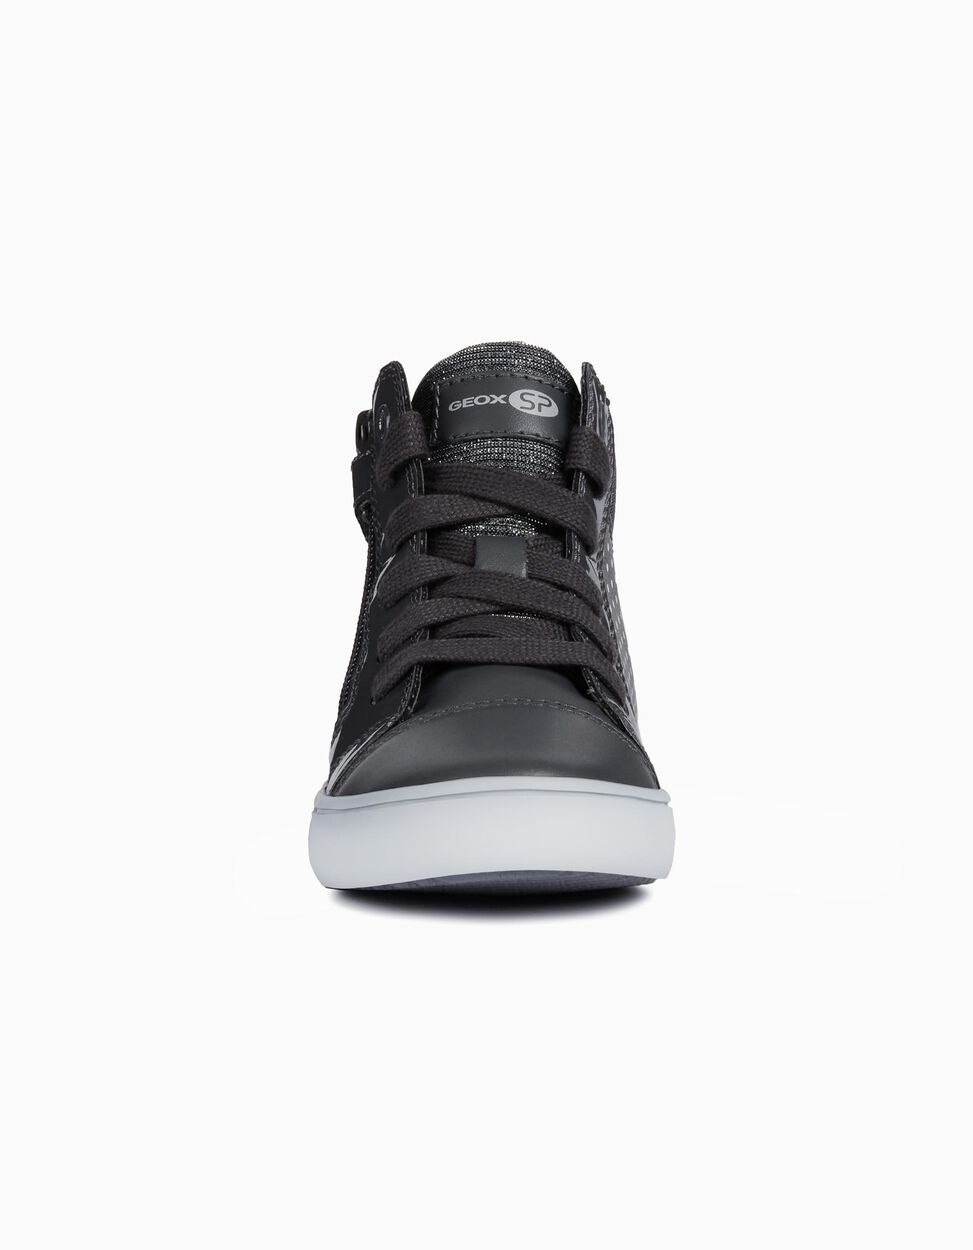 Sapatilha High-top com fecho lateral da Geox